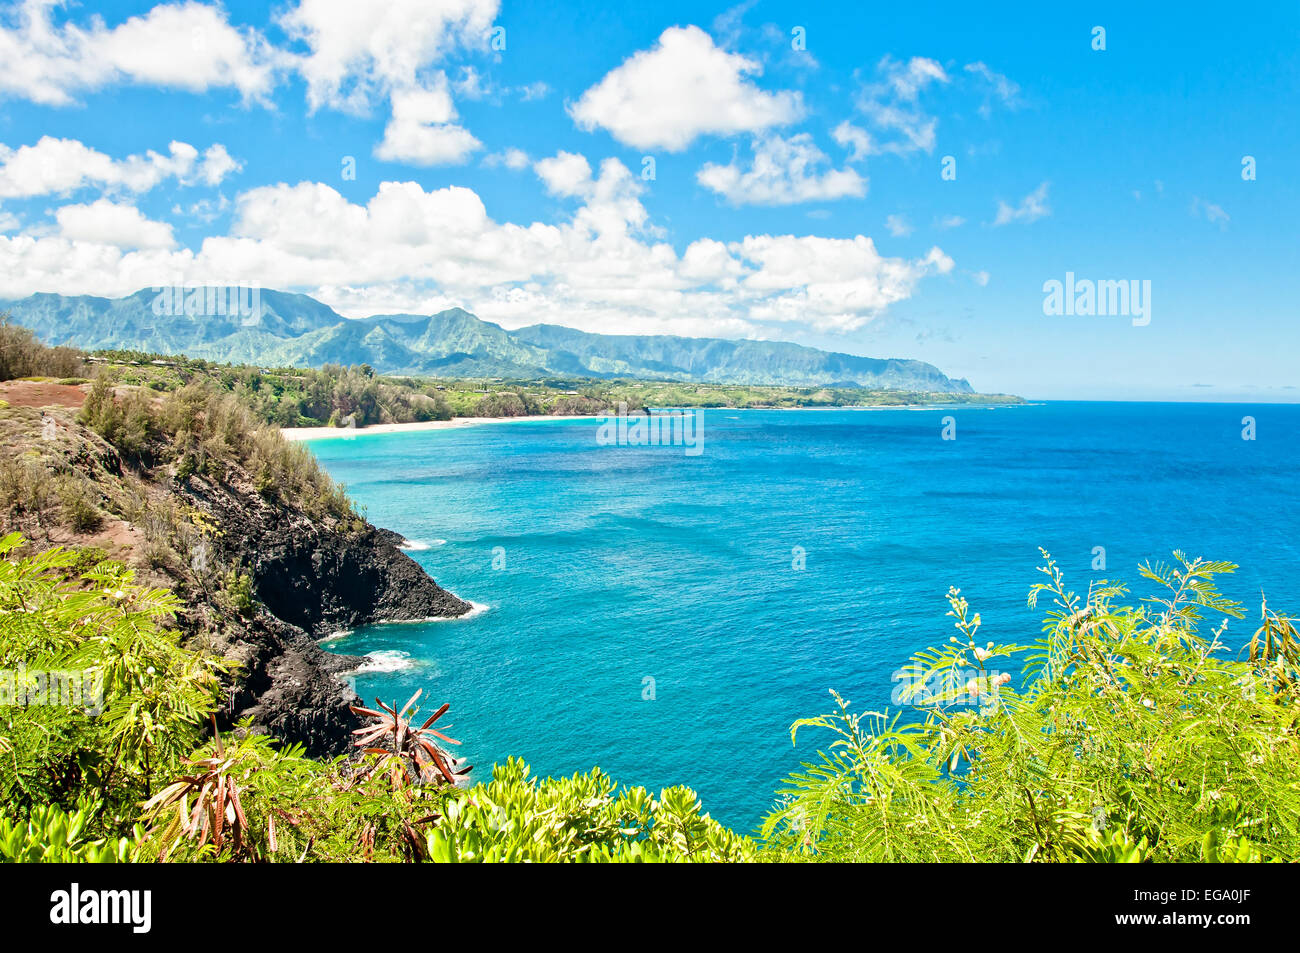 Kauai north shore in a sunny day, Hawaii Islands - Stock Image